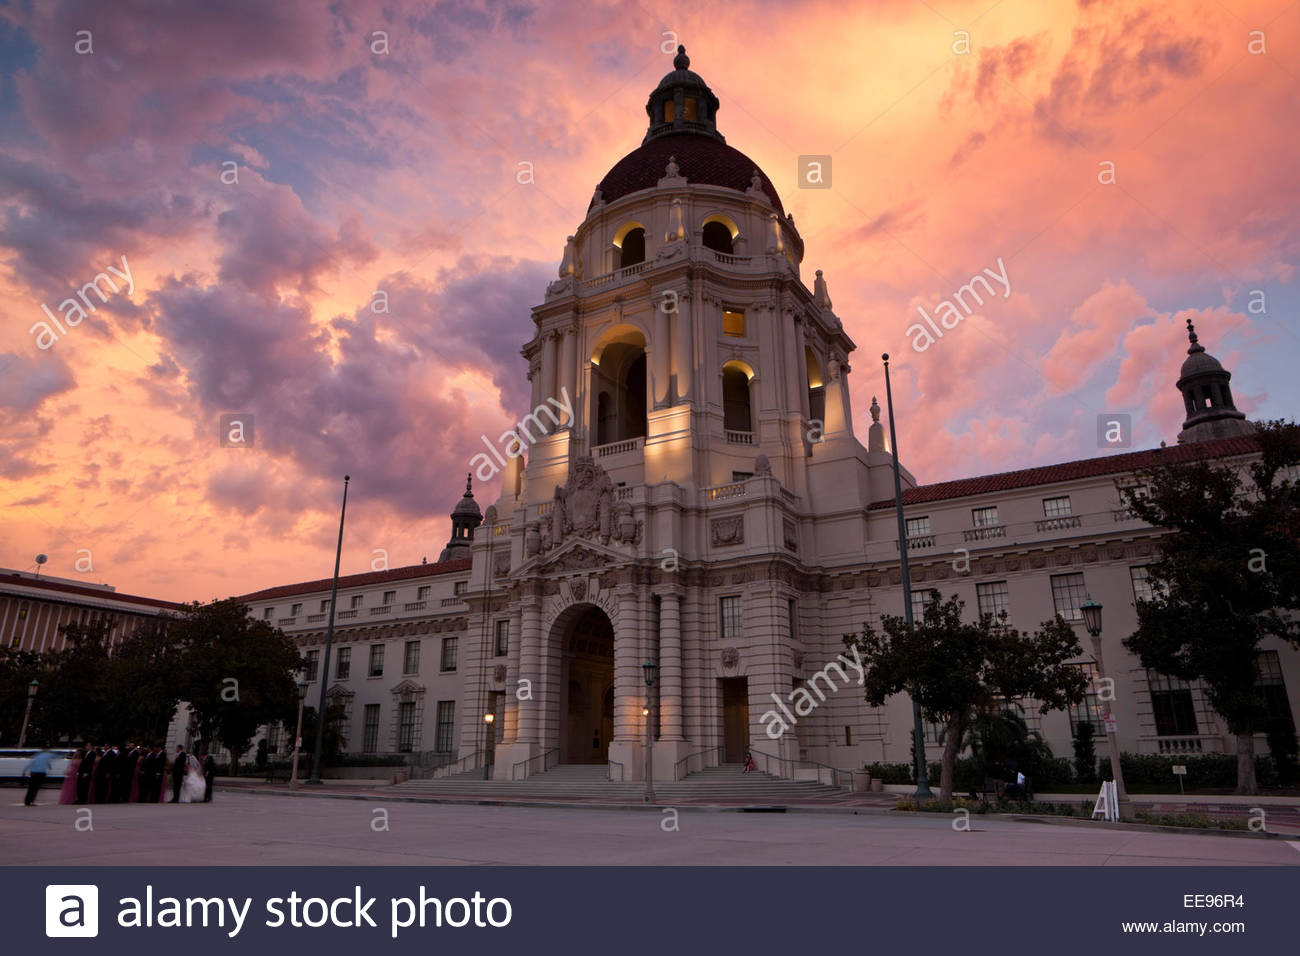 Pasadena City Hall Wedding.Wedding Photography Session In Front Of City Hall At Sunset Stock